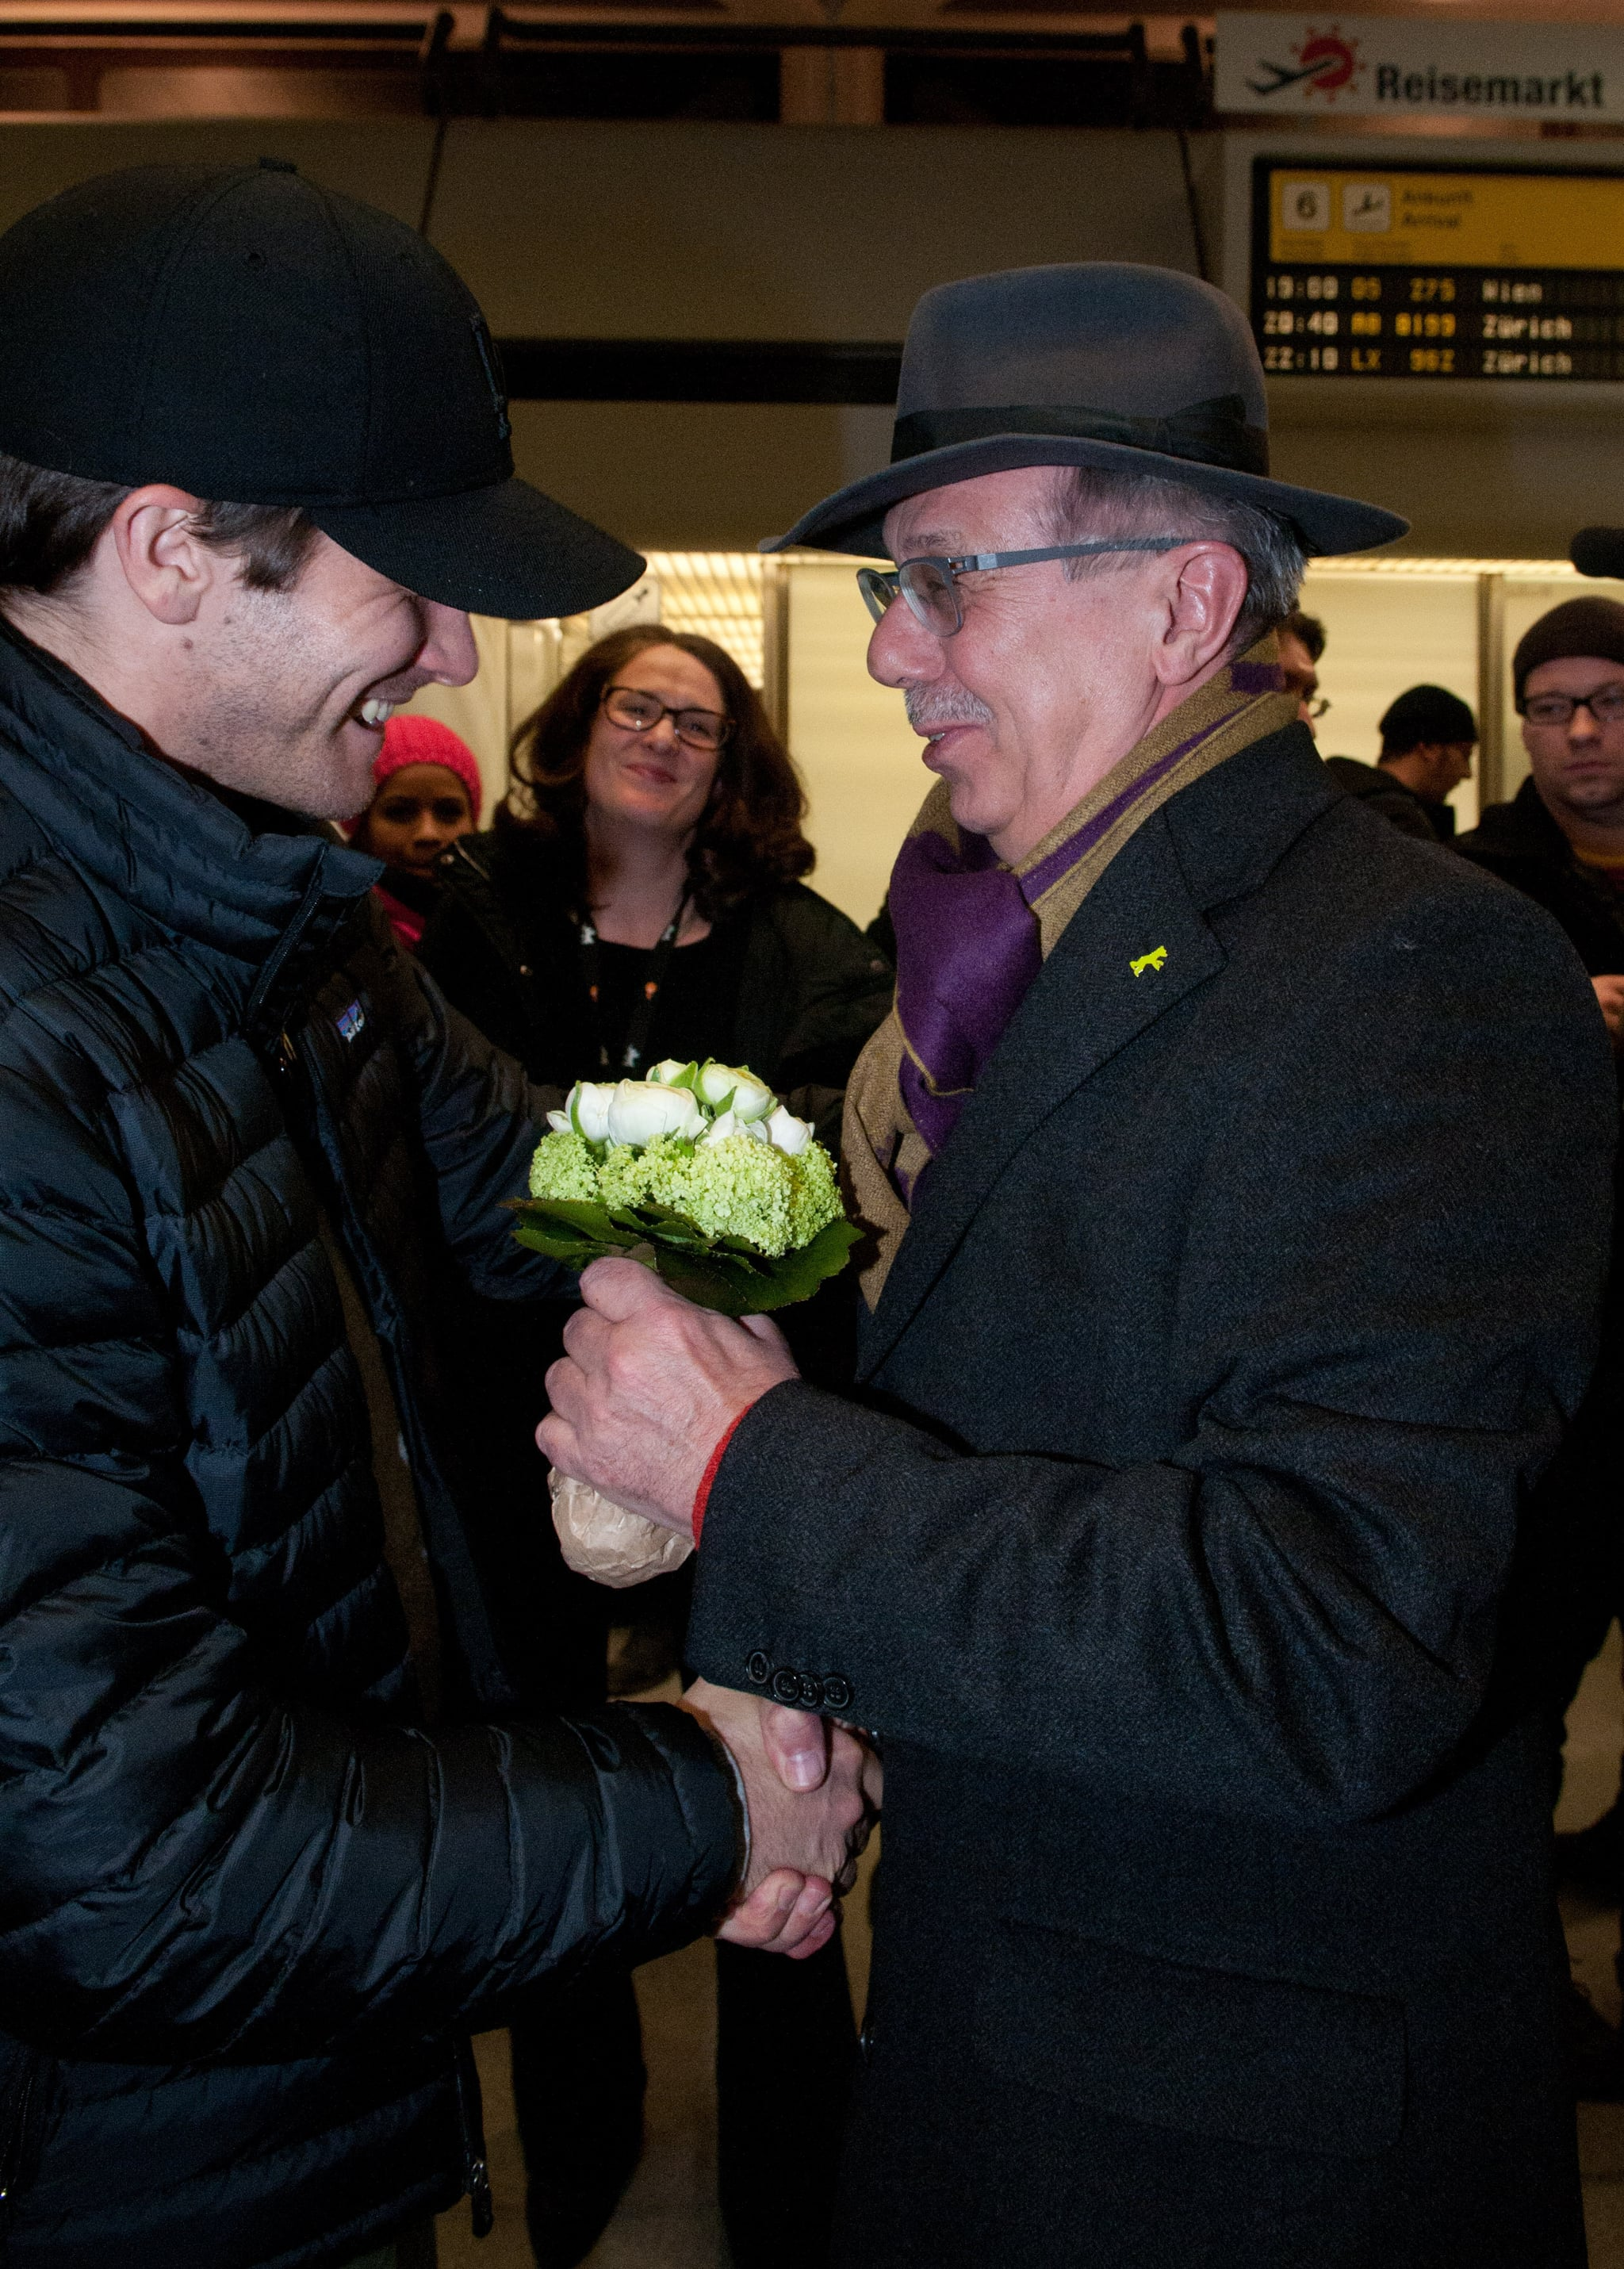 Jake shared a handshake with the Berlin Film Festival director.